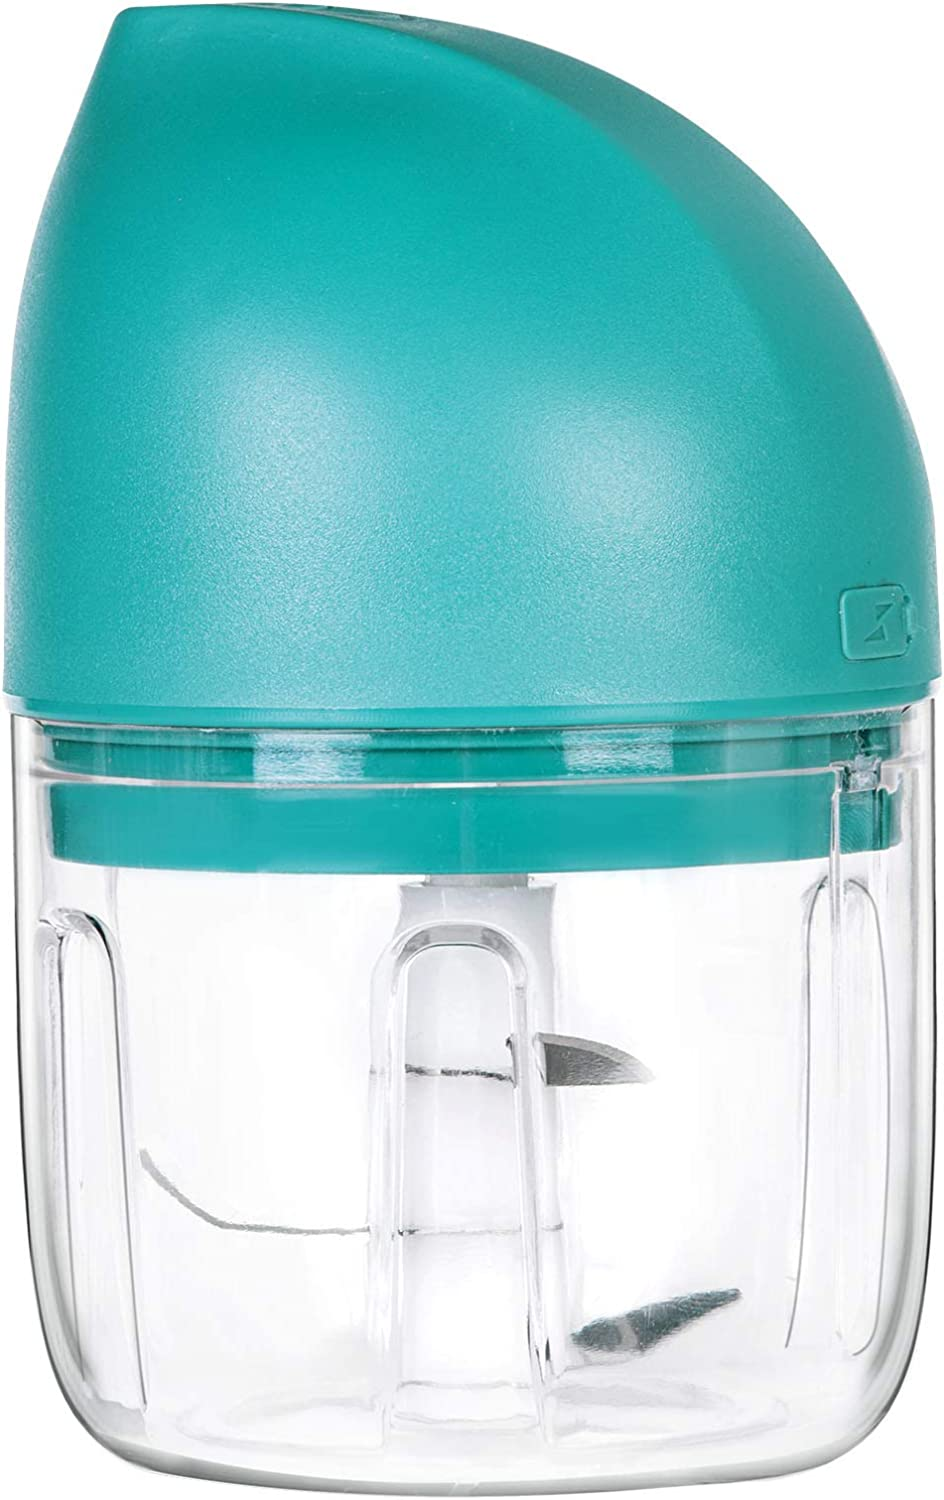 250ml Portable Wireless Mini Food Processor, Rechargeable Mini Garlic Mincer Chopper, Electric Mini Food Chopper for Garlic, Onion, Nut, Vegetable, Meat and Baby Food,Easy to Clean,BPA Free